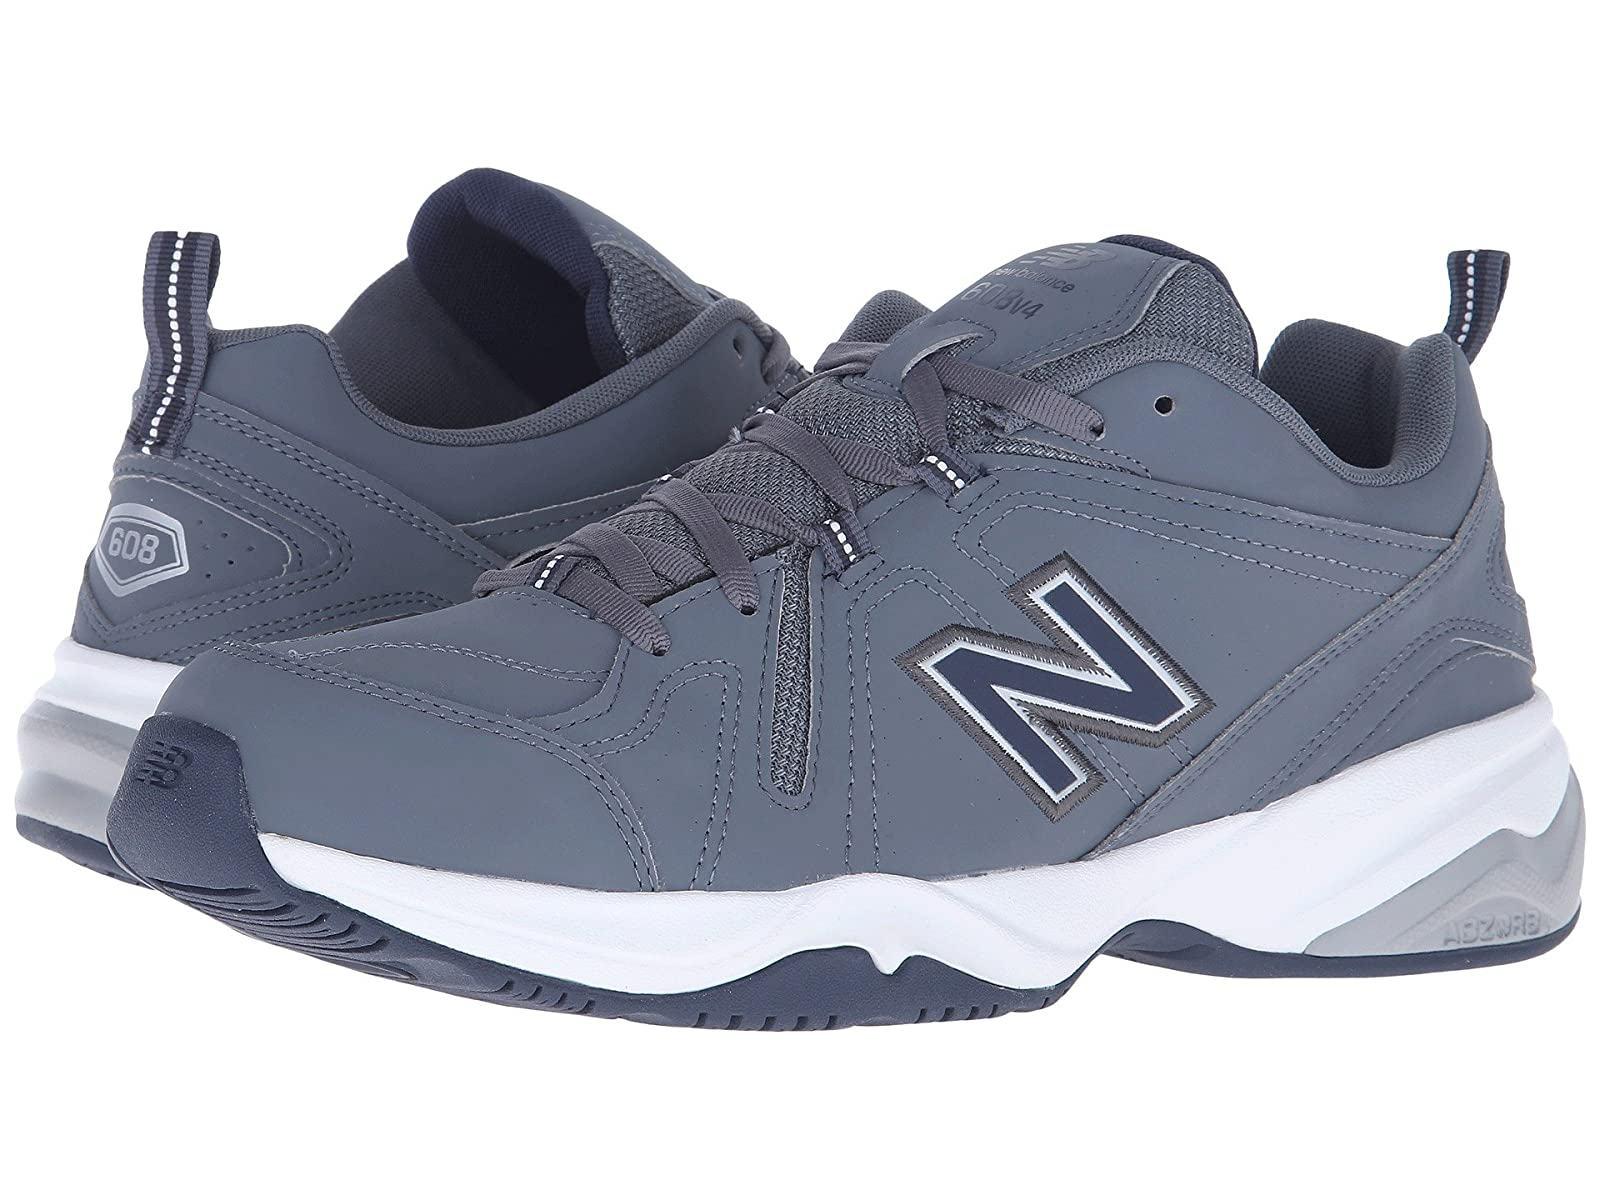 New Balance MX608v4Cheap and distinctive eye-catching shoes